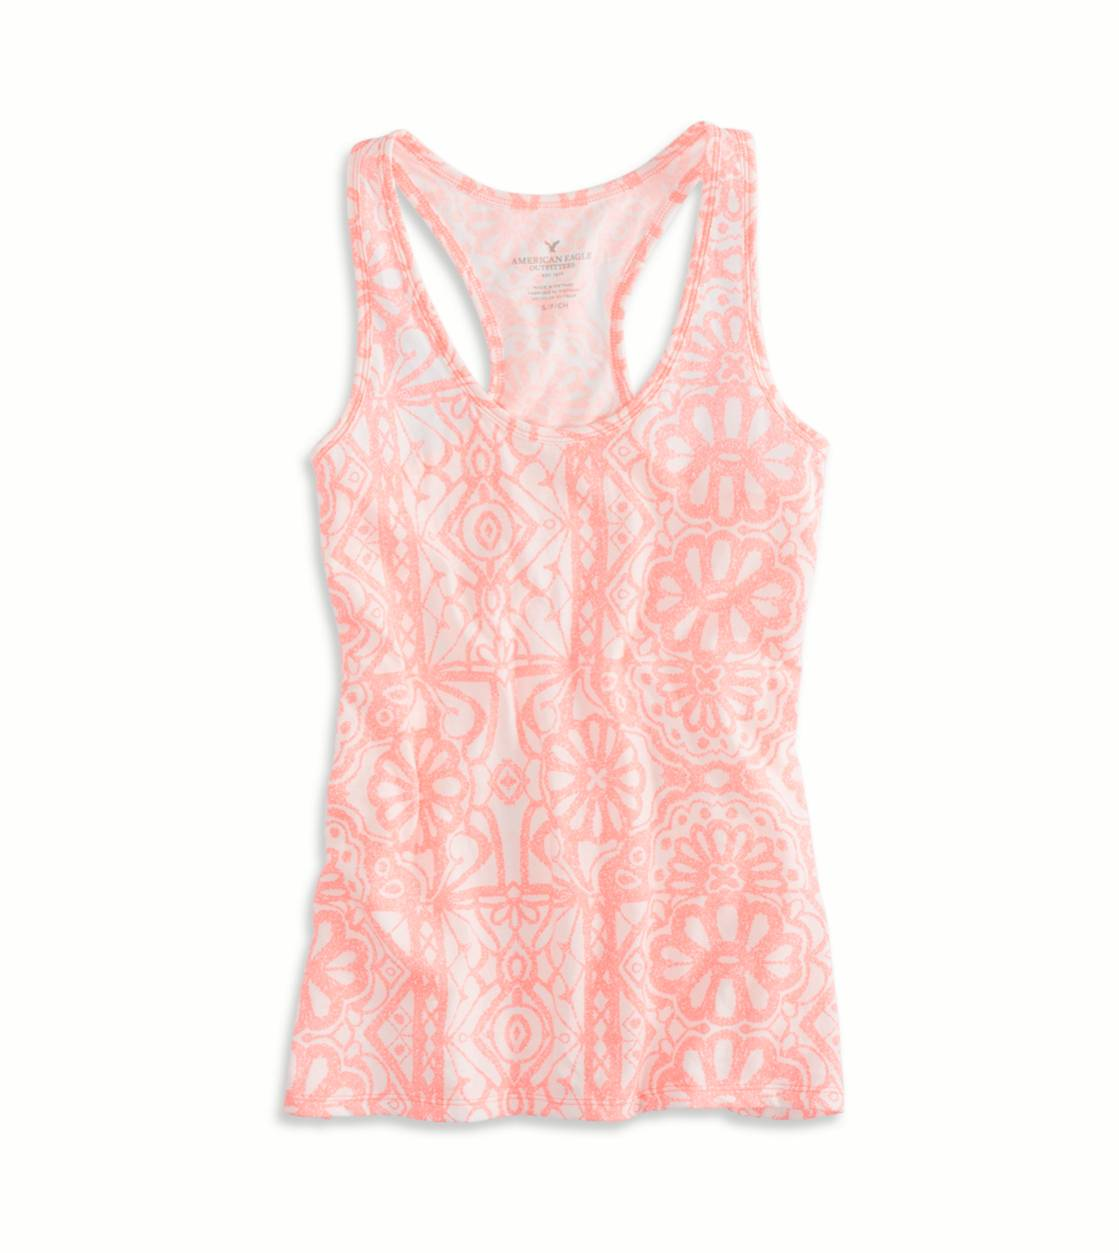 Knockout Pink AEO Factory Favorite Tank